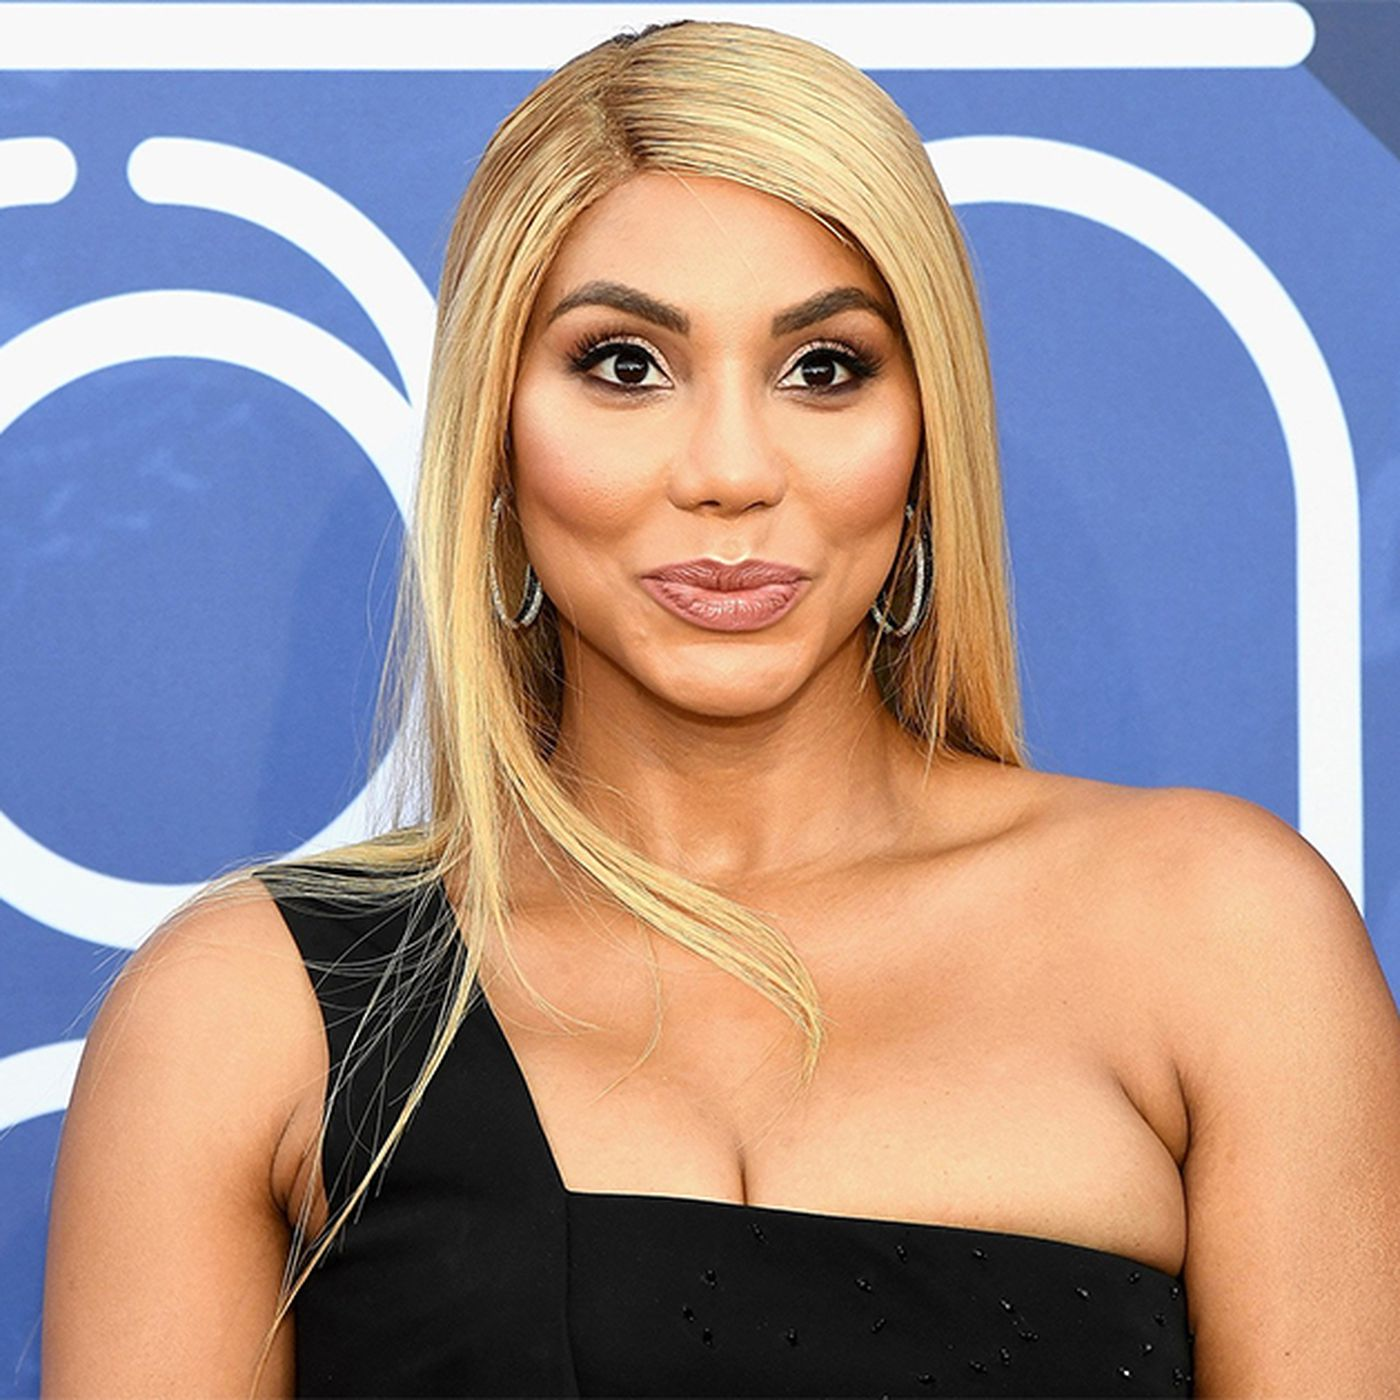 Tamar Braxton Prepares A Surprise For March 21 – Check Out What It Is Here